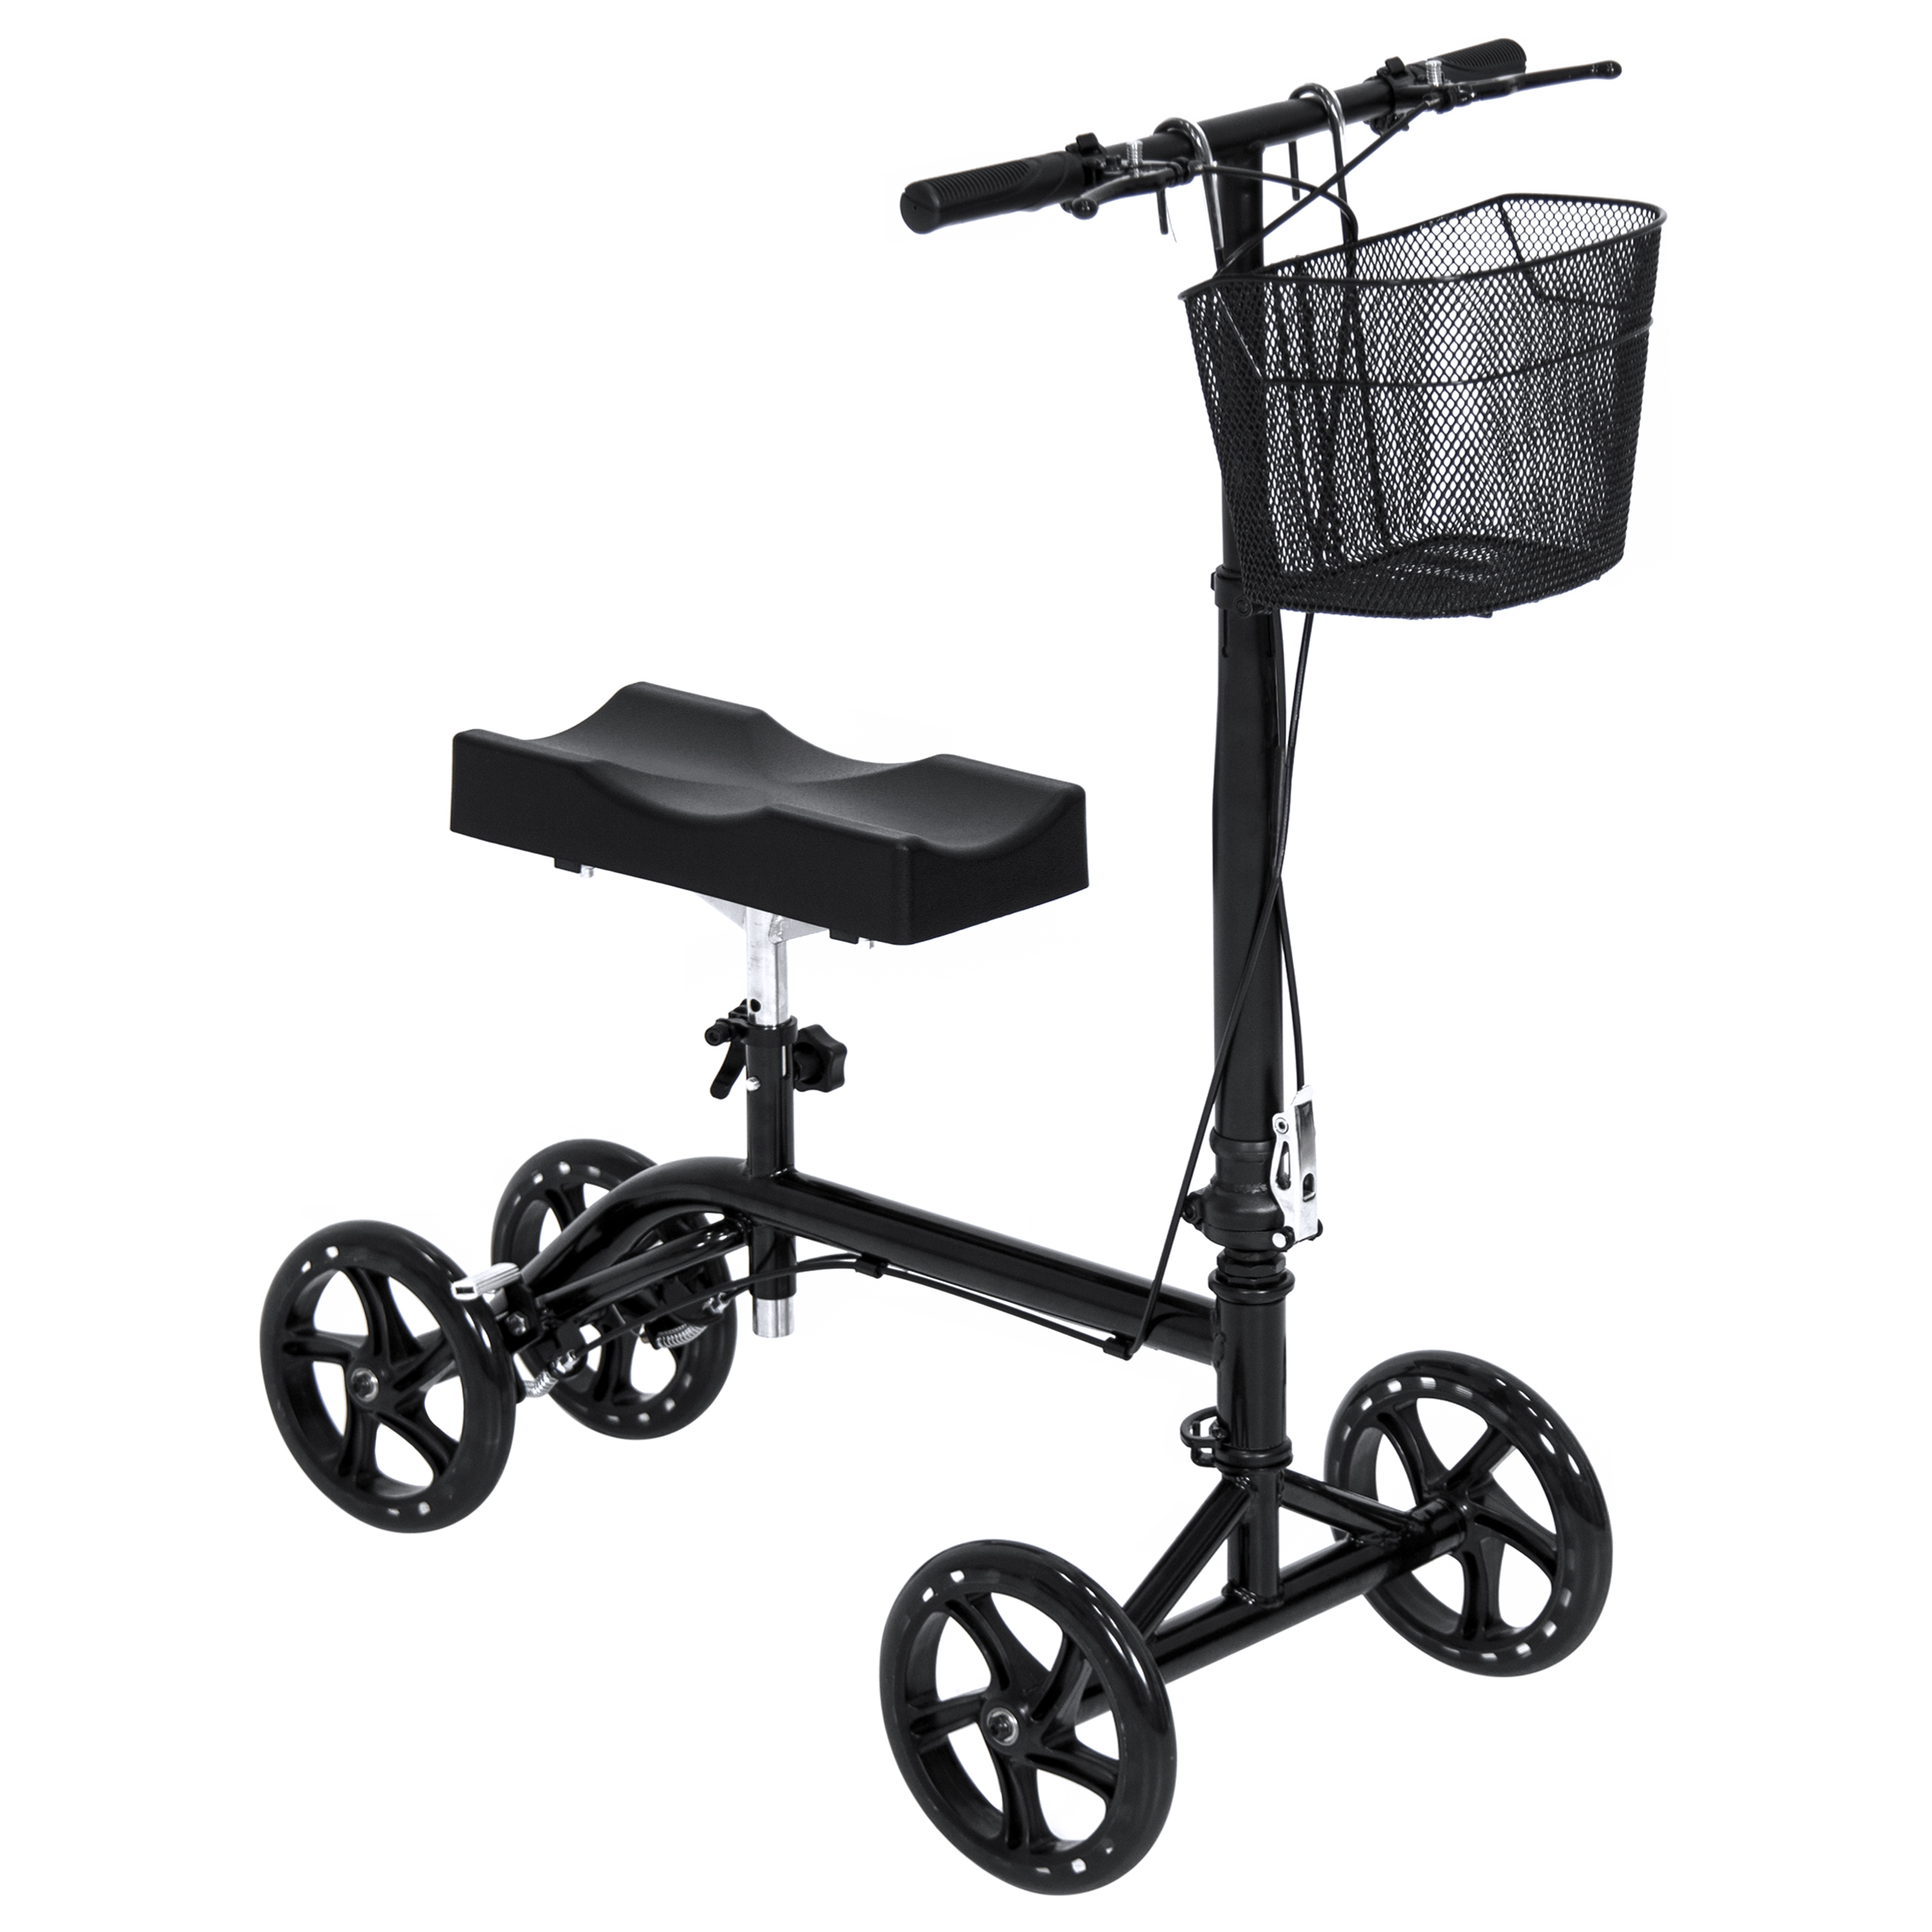 Skytel Best Choice Products Steerable Folding Medical Knee Walker Scooter Leg Crutch w/ Basket and Brake System - Black